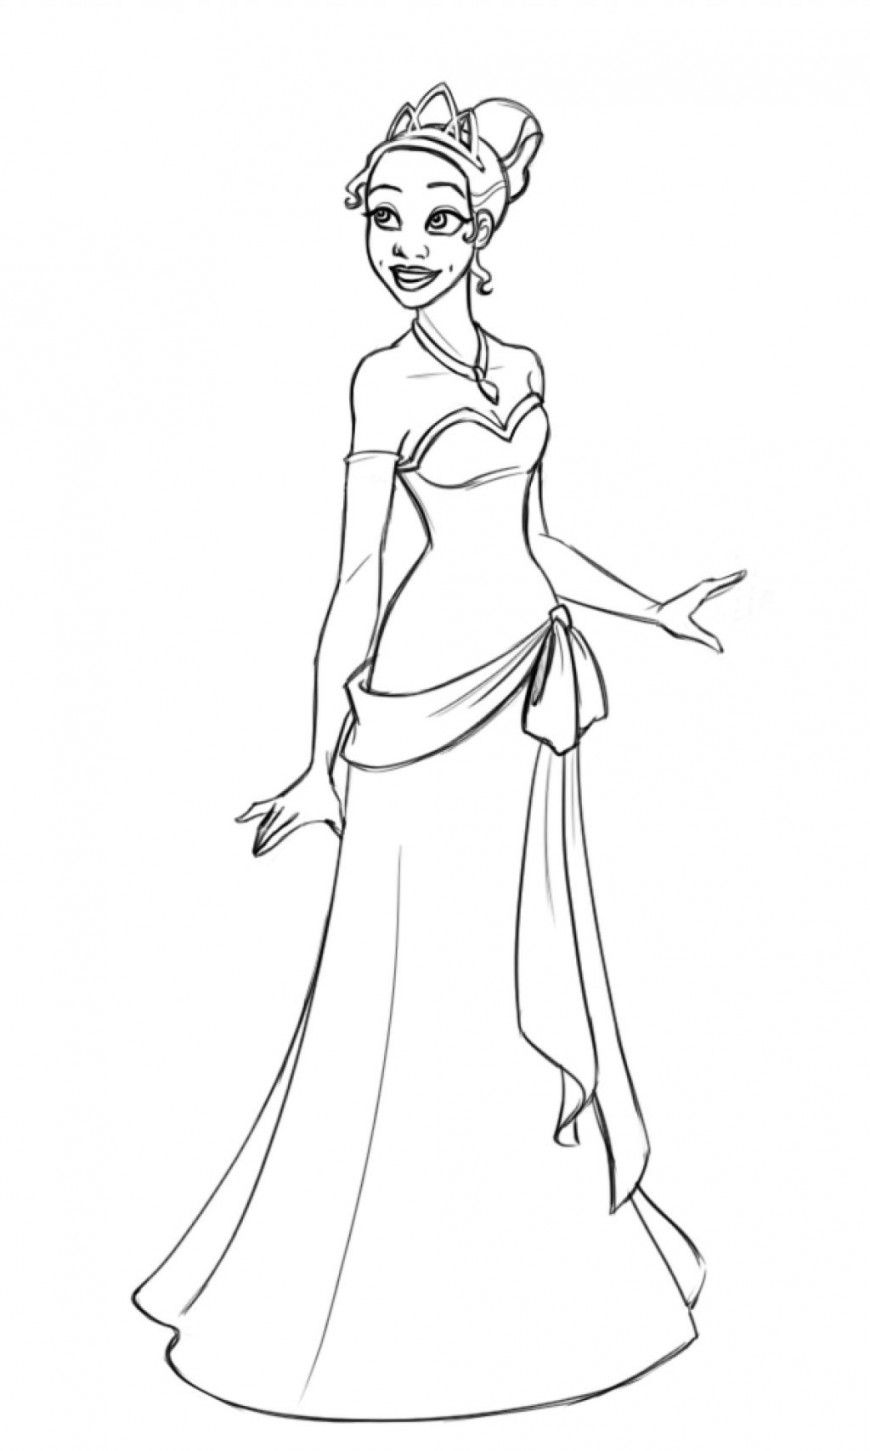 Princess-Tiana-Coloring-Pages-To-Print.jpg (870×1451) | Disney\'s ...